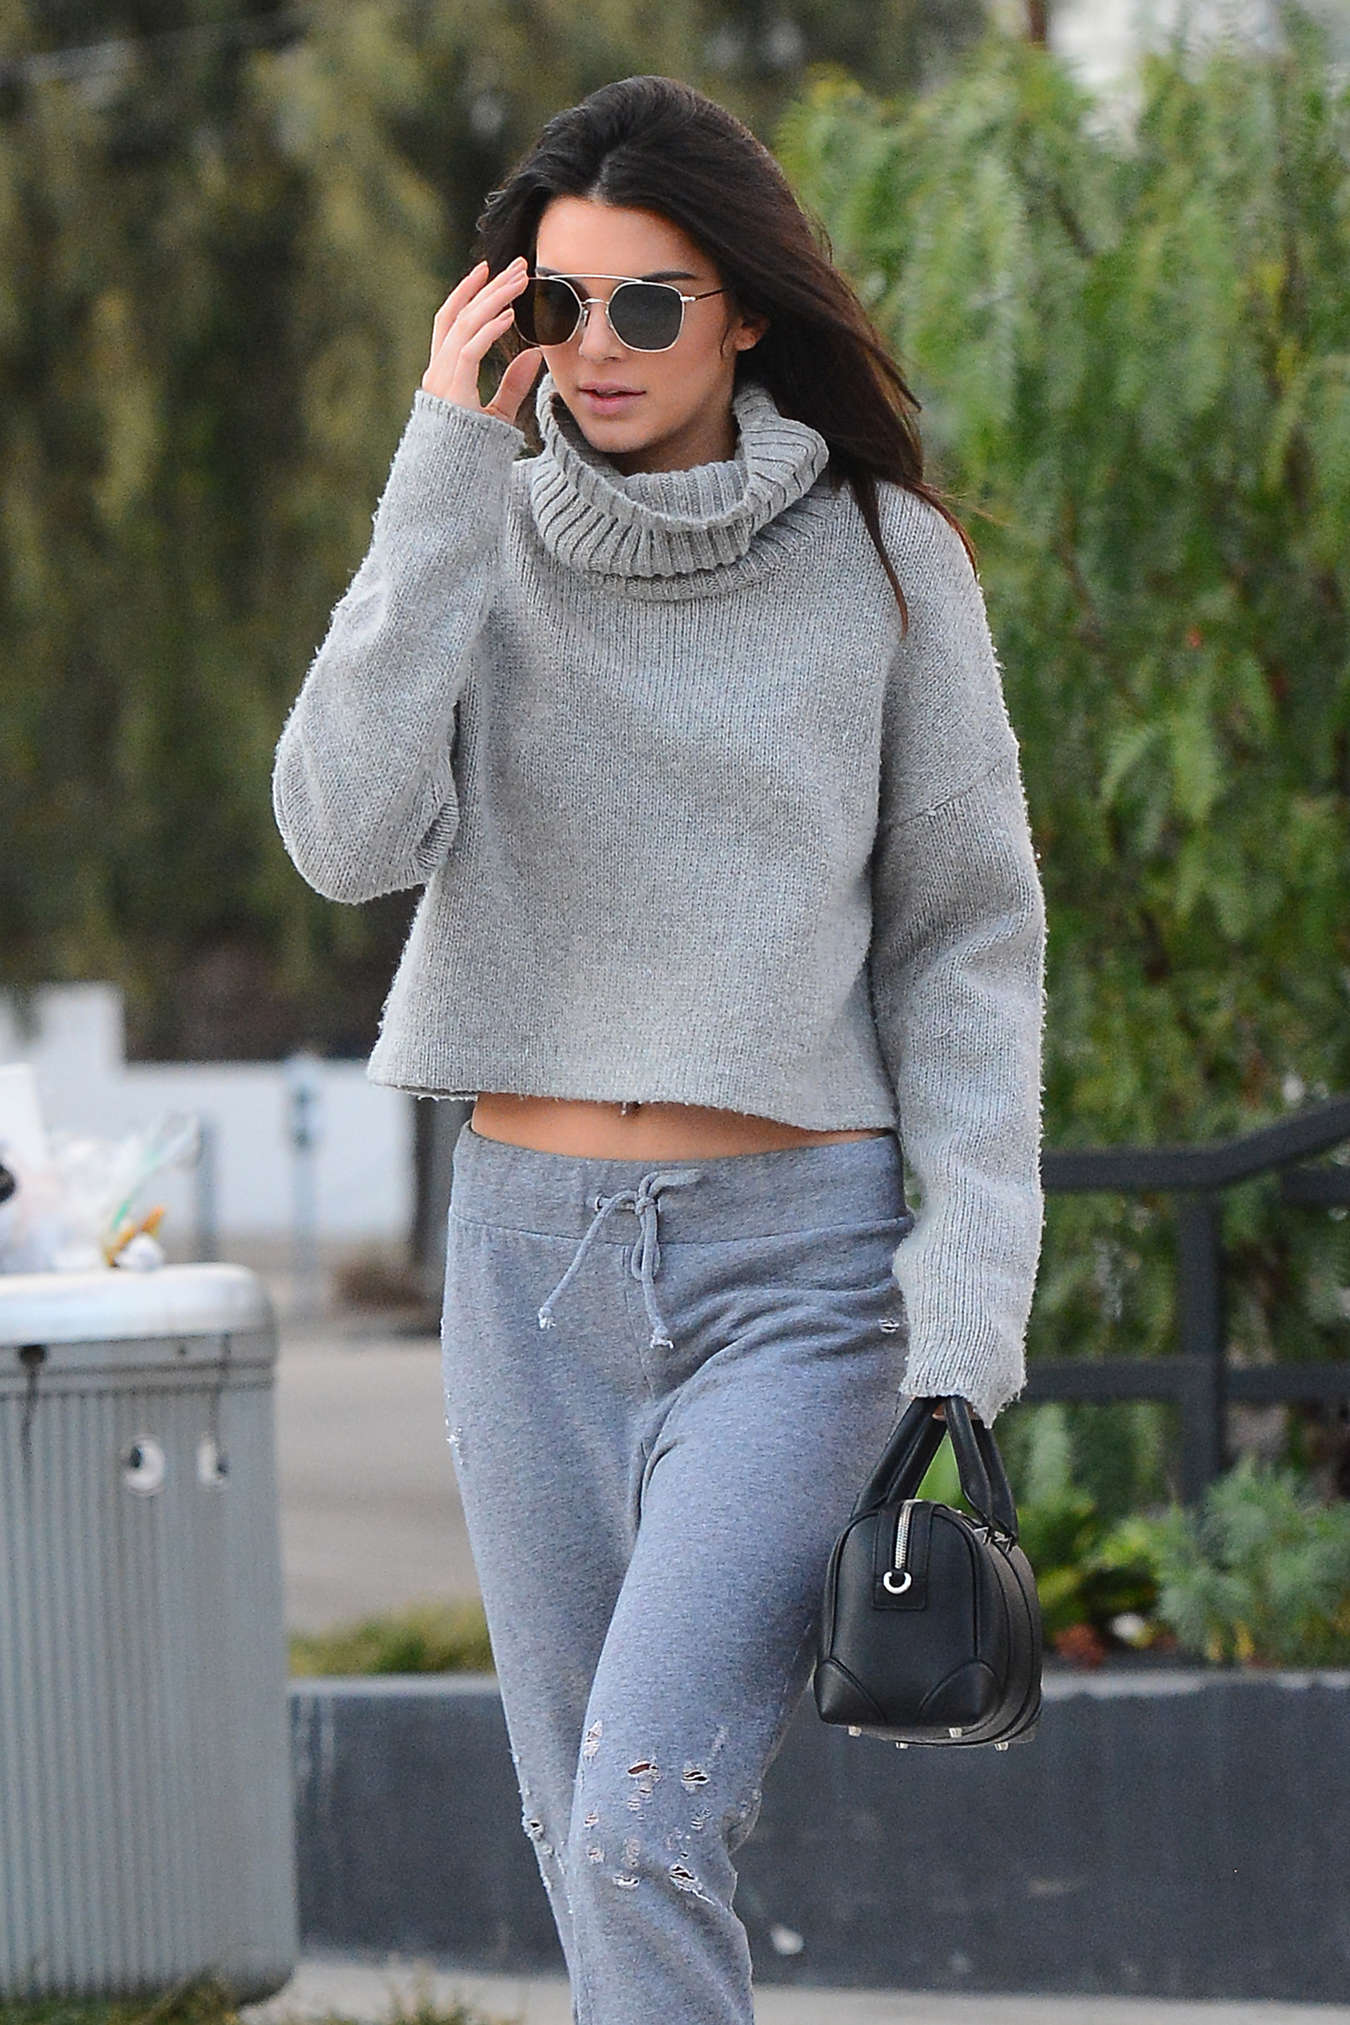 Kendall Jenner - Out and about in West Hollywood